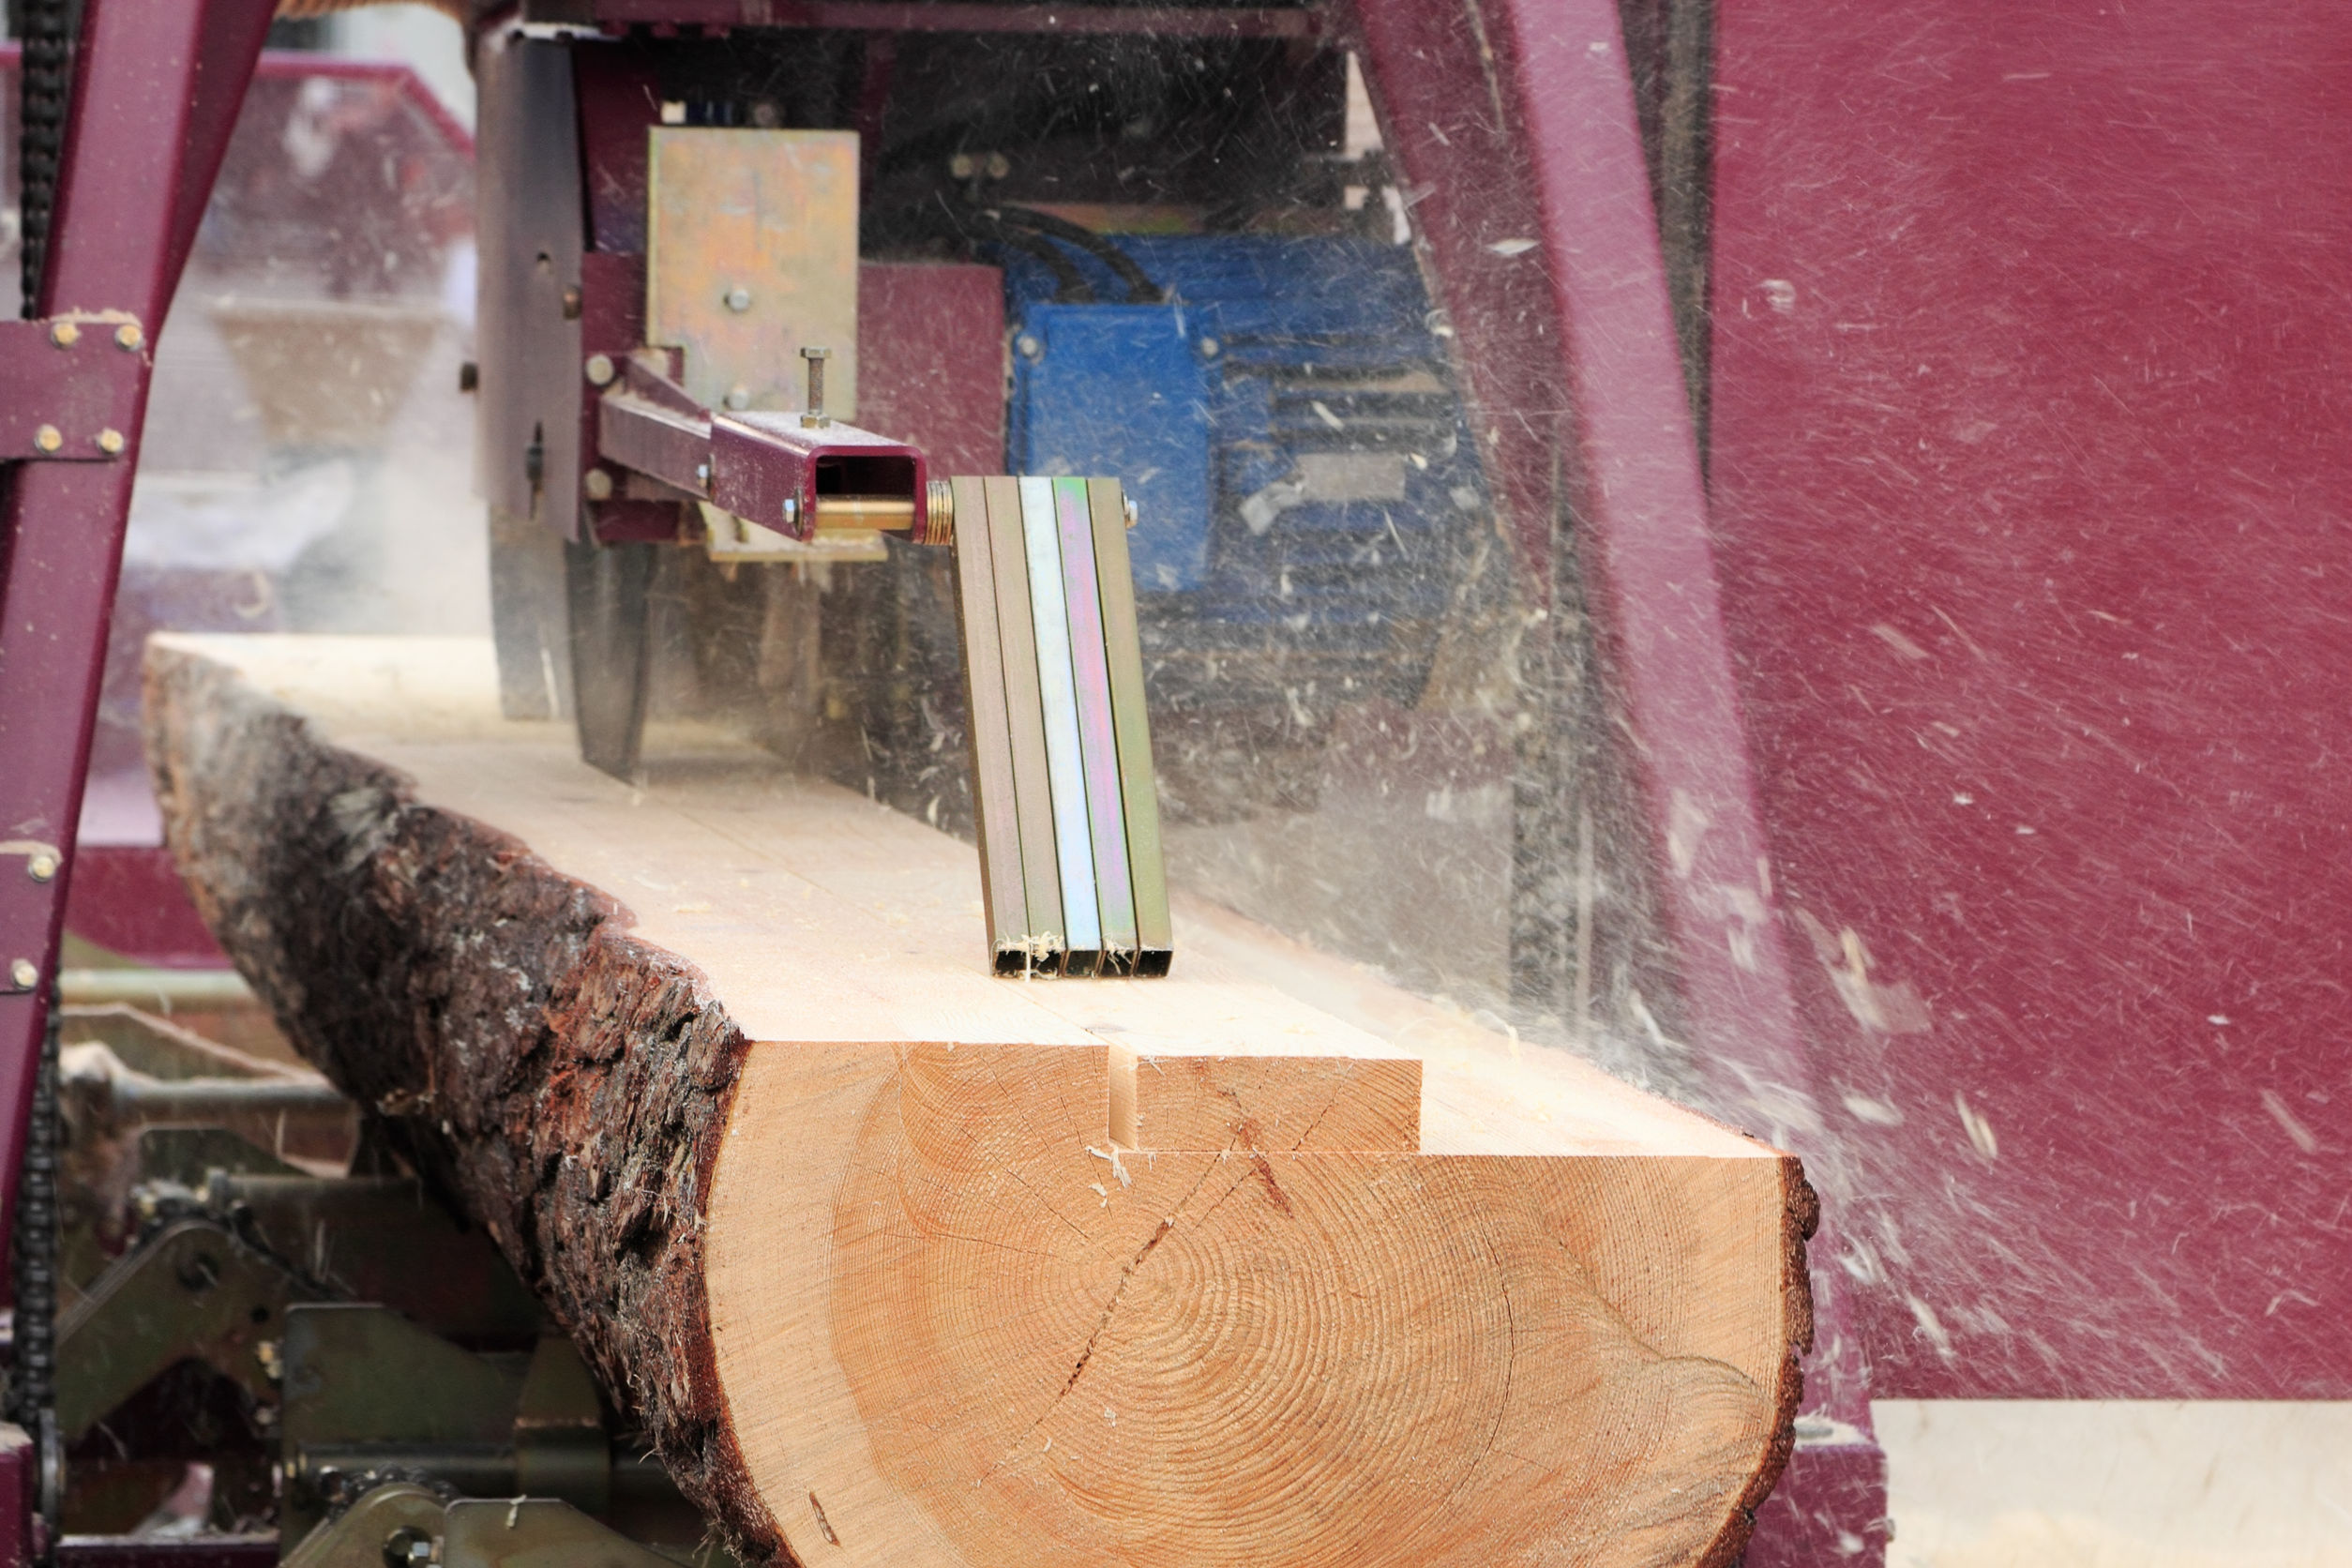 35548258 - sawing boards from logs with modern sawmill.